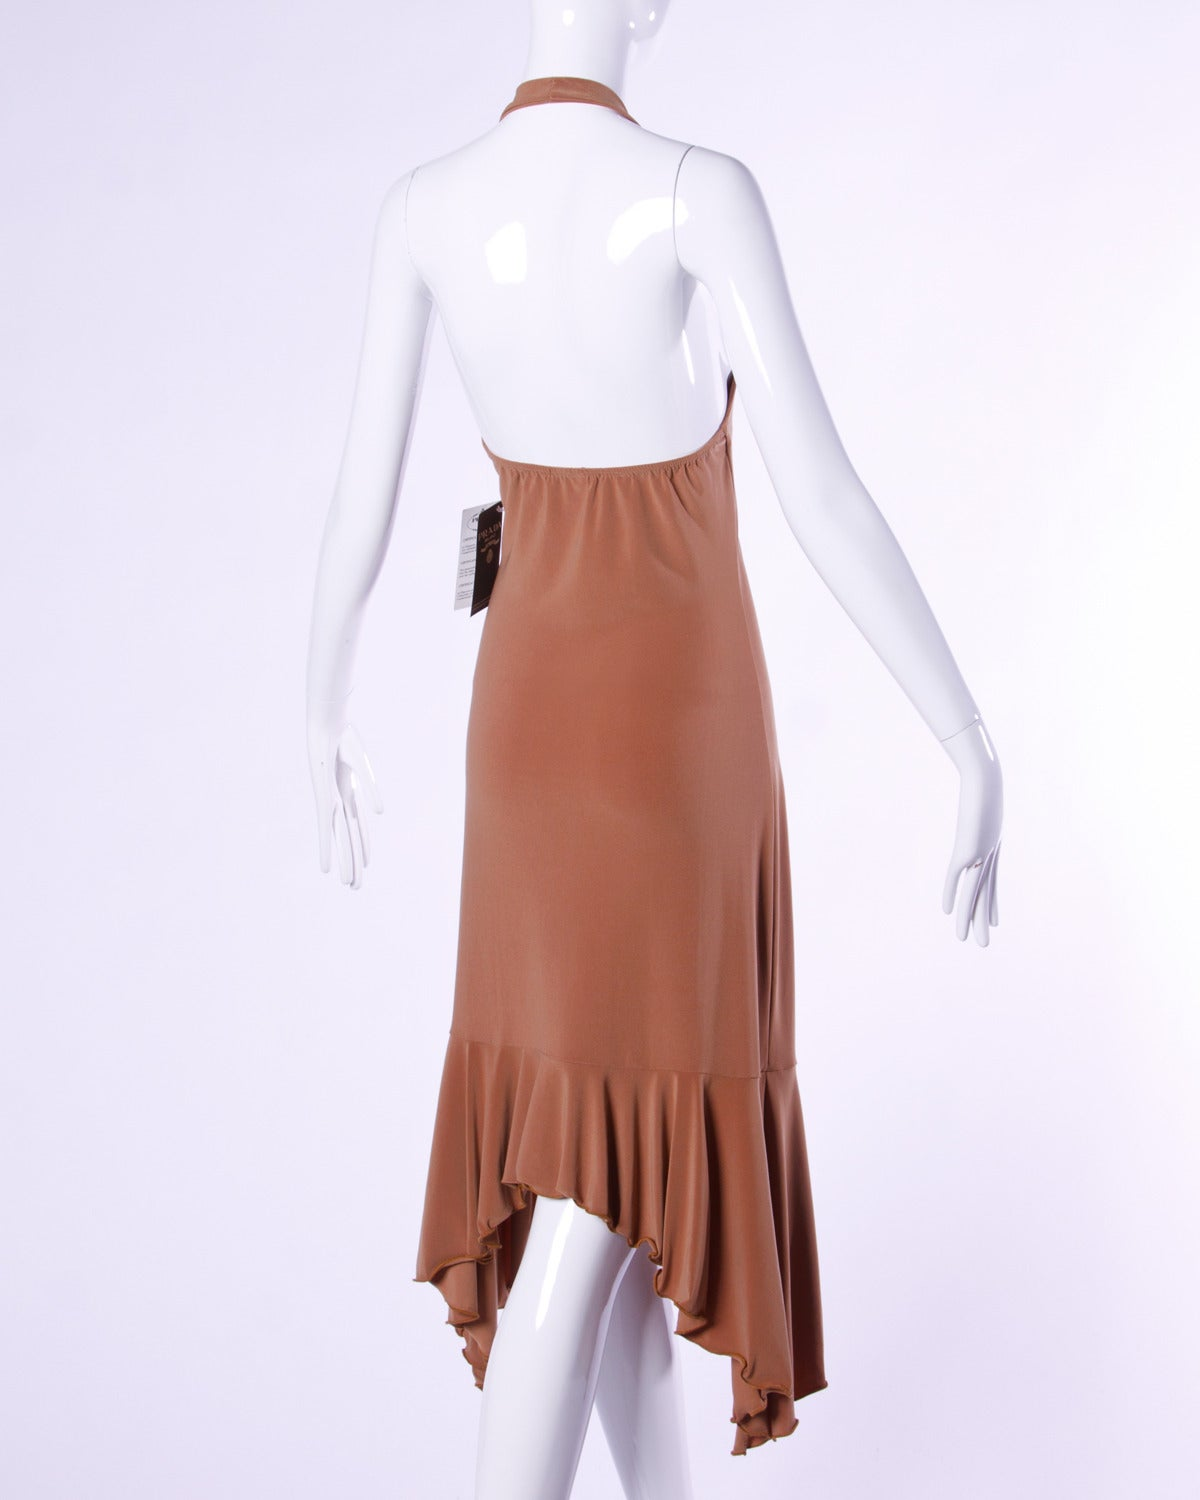 Women's Unworn Prada Deadstock Tan Jersey Knit Open Back Halter Dress For Sale